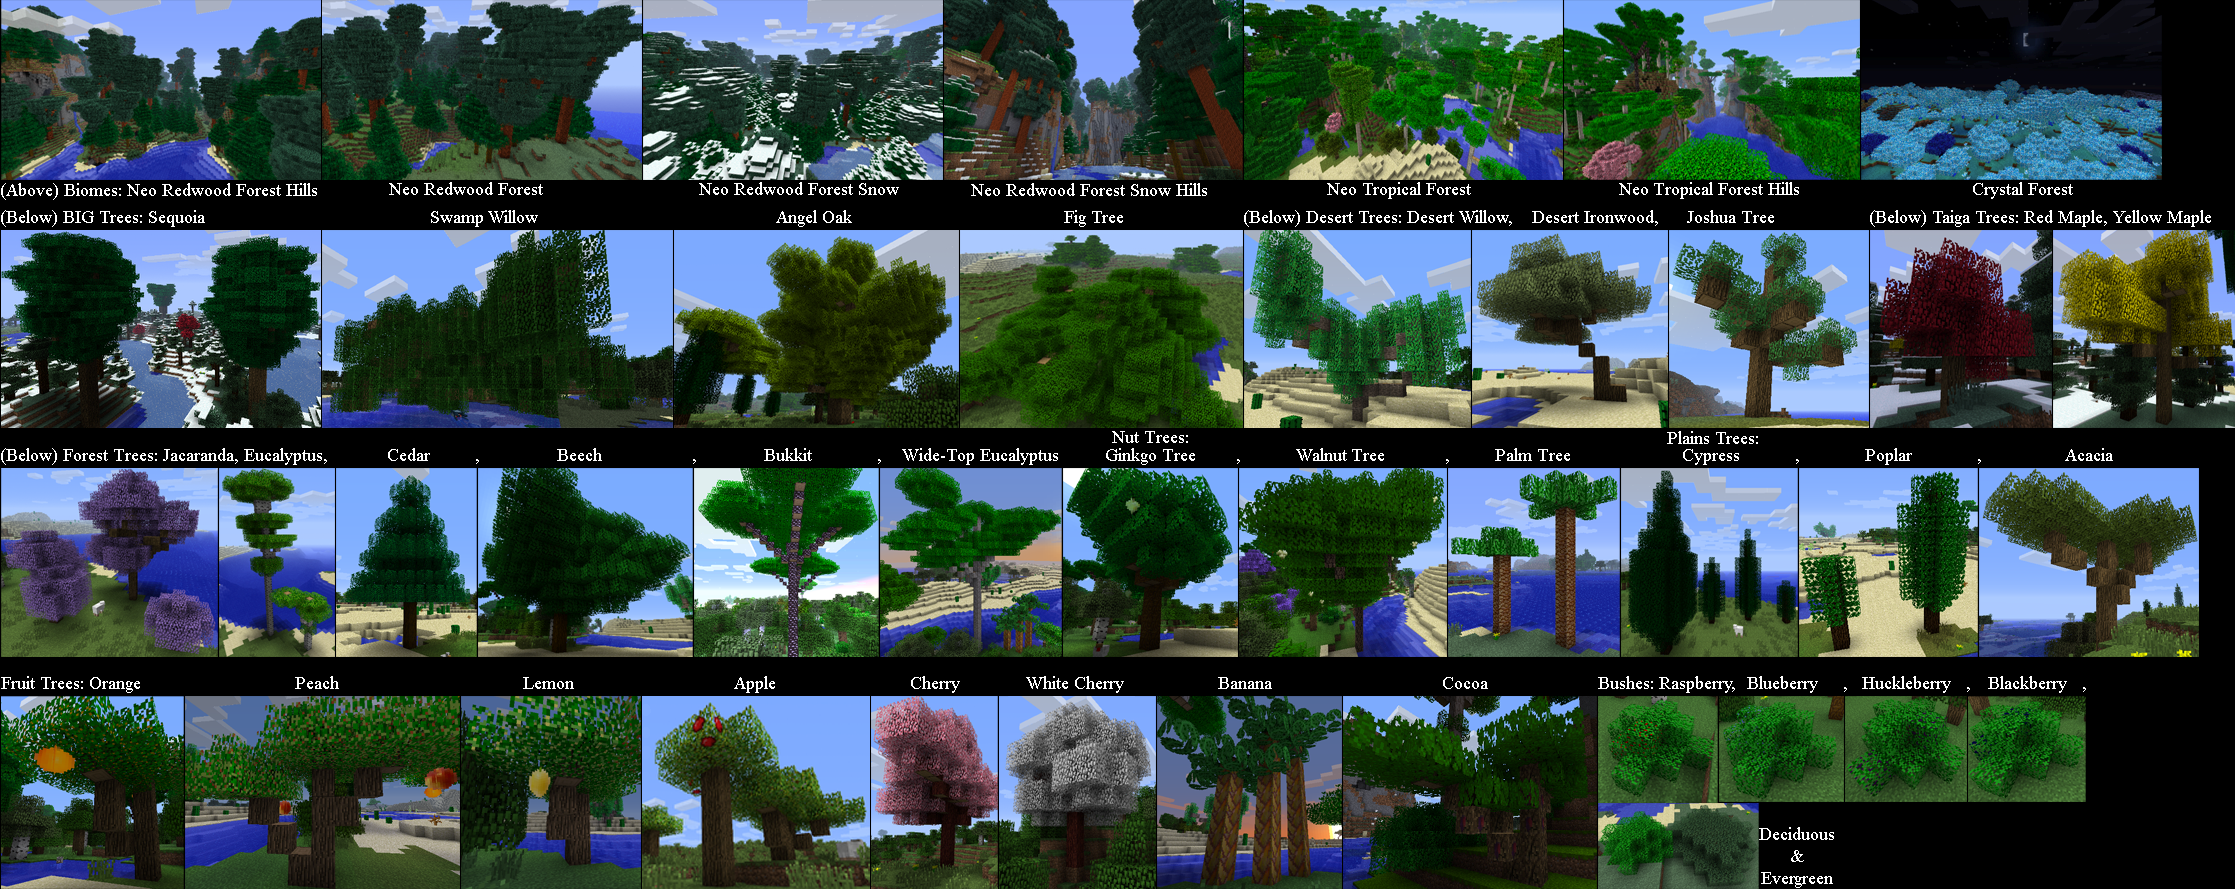 http://minecraft-forum.net/wp-content/uploads/2012/11/e1f88__bigtree1.png